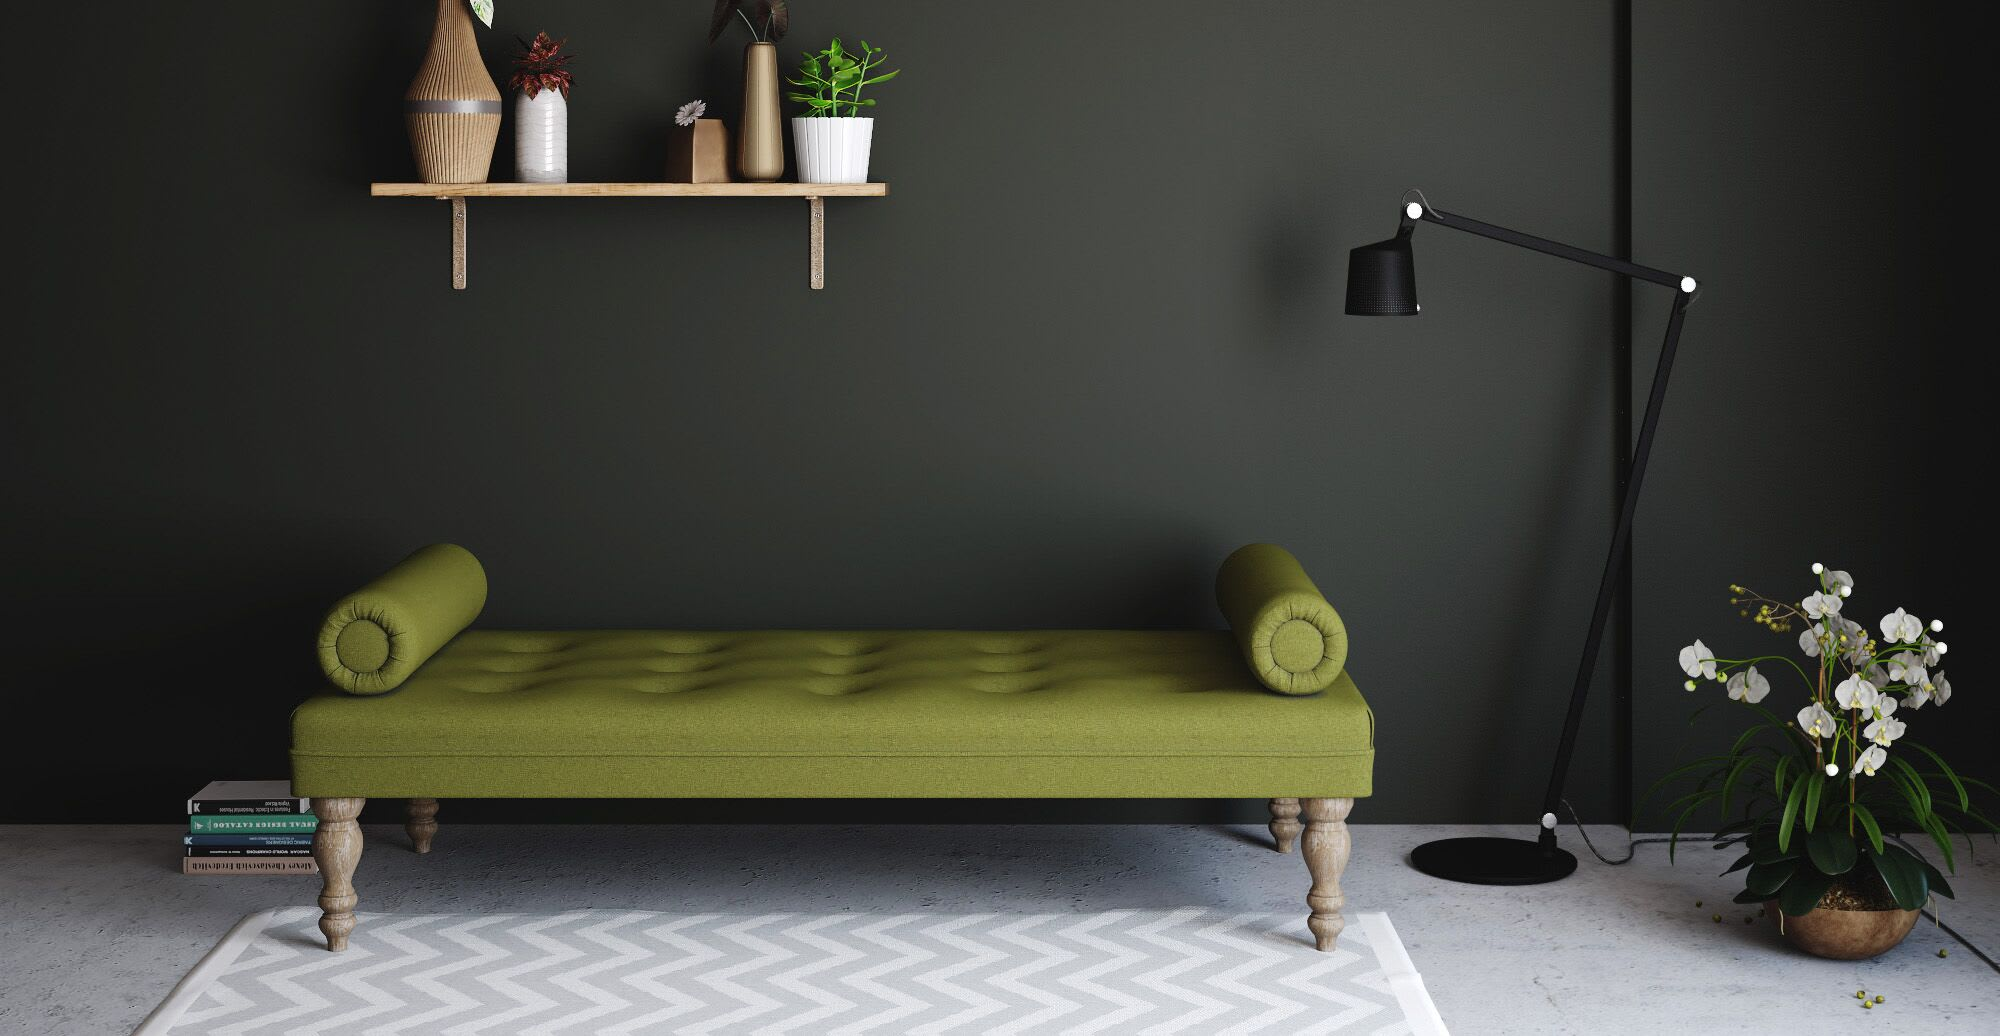 a green daybed in a designer living room